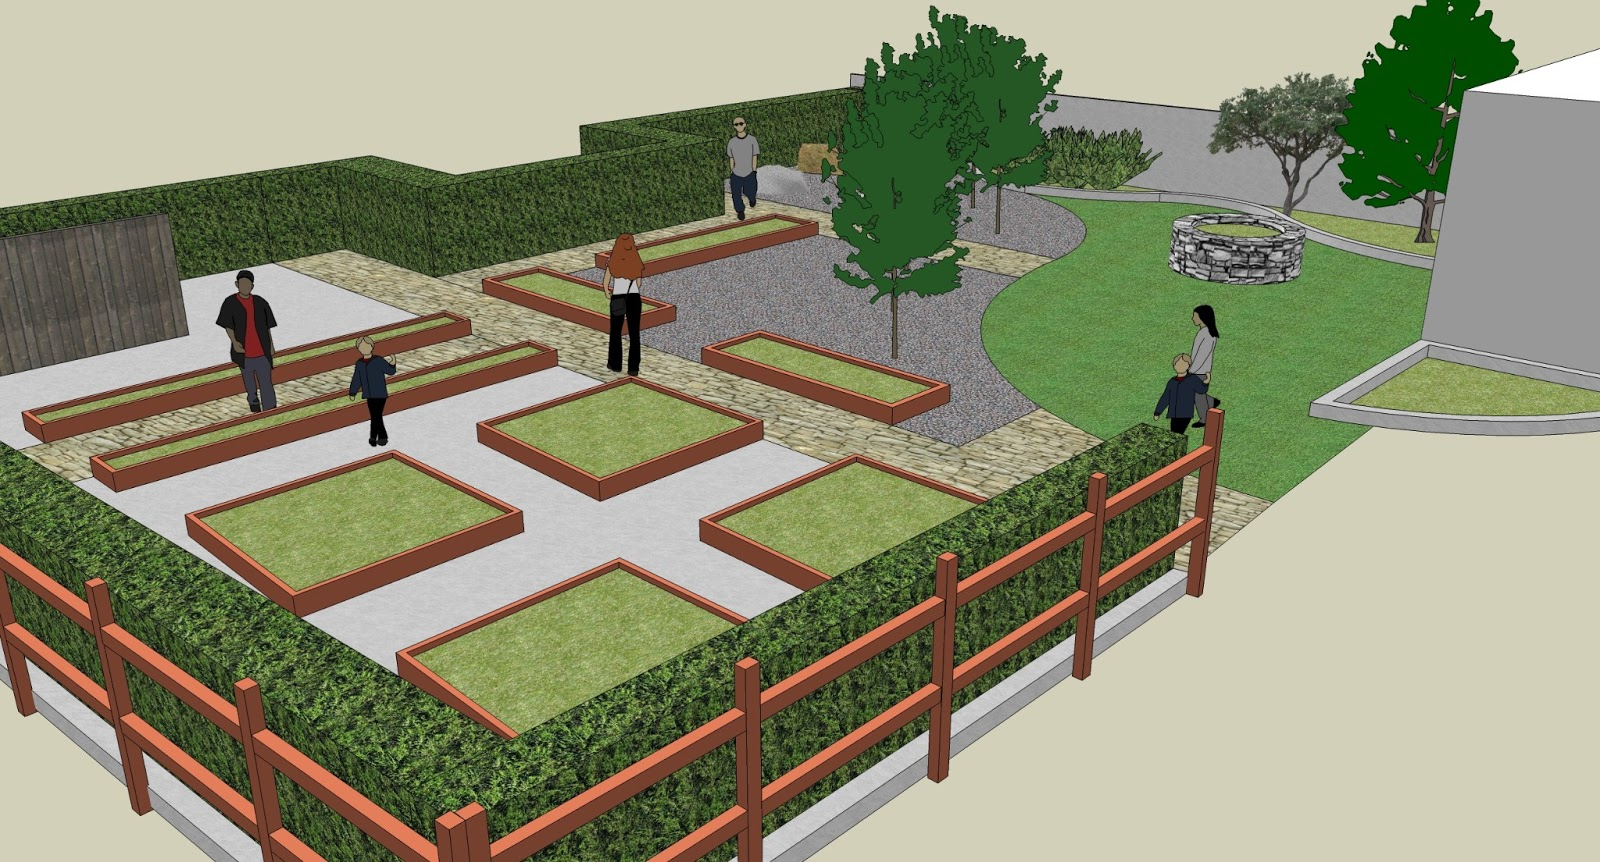 School garden design gannon griffin landscape architecture Garden design school